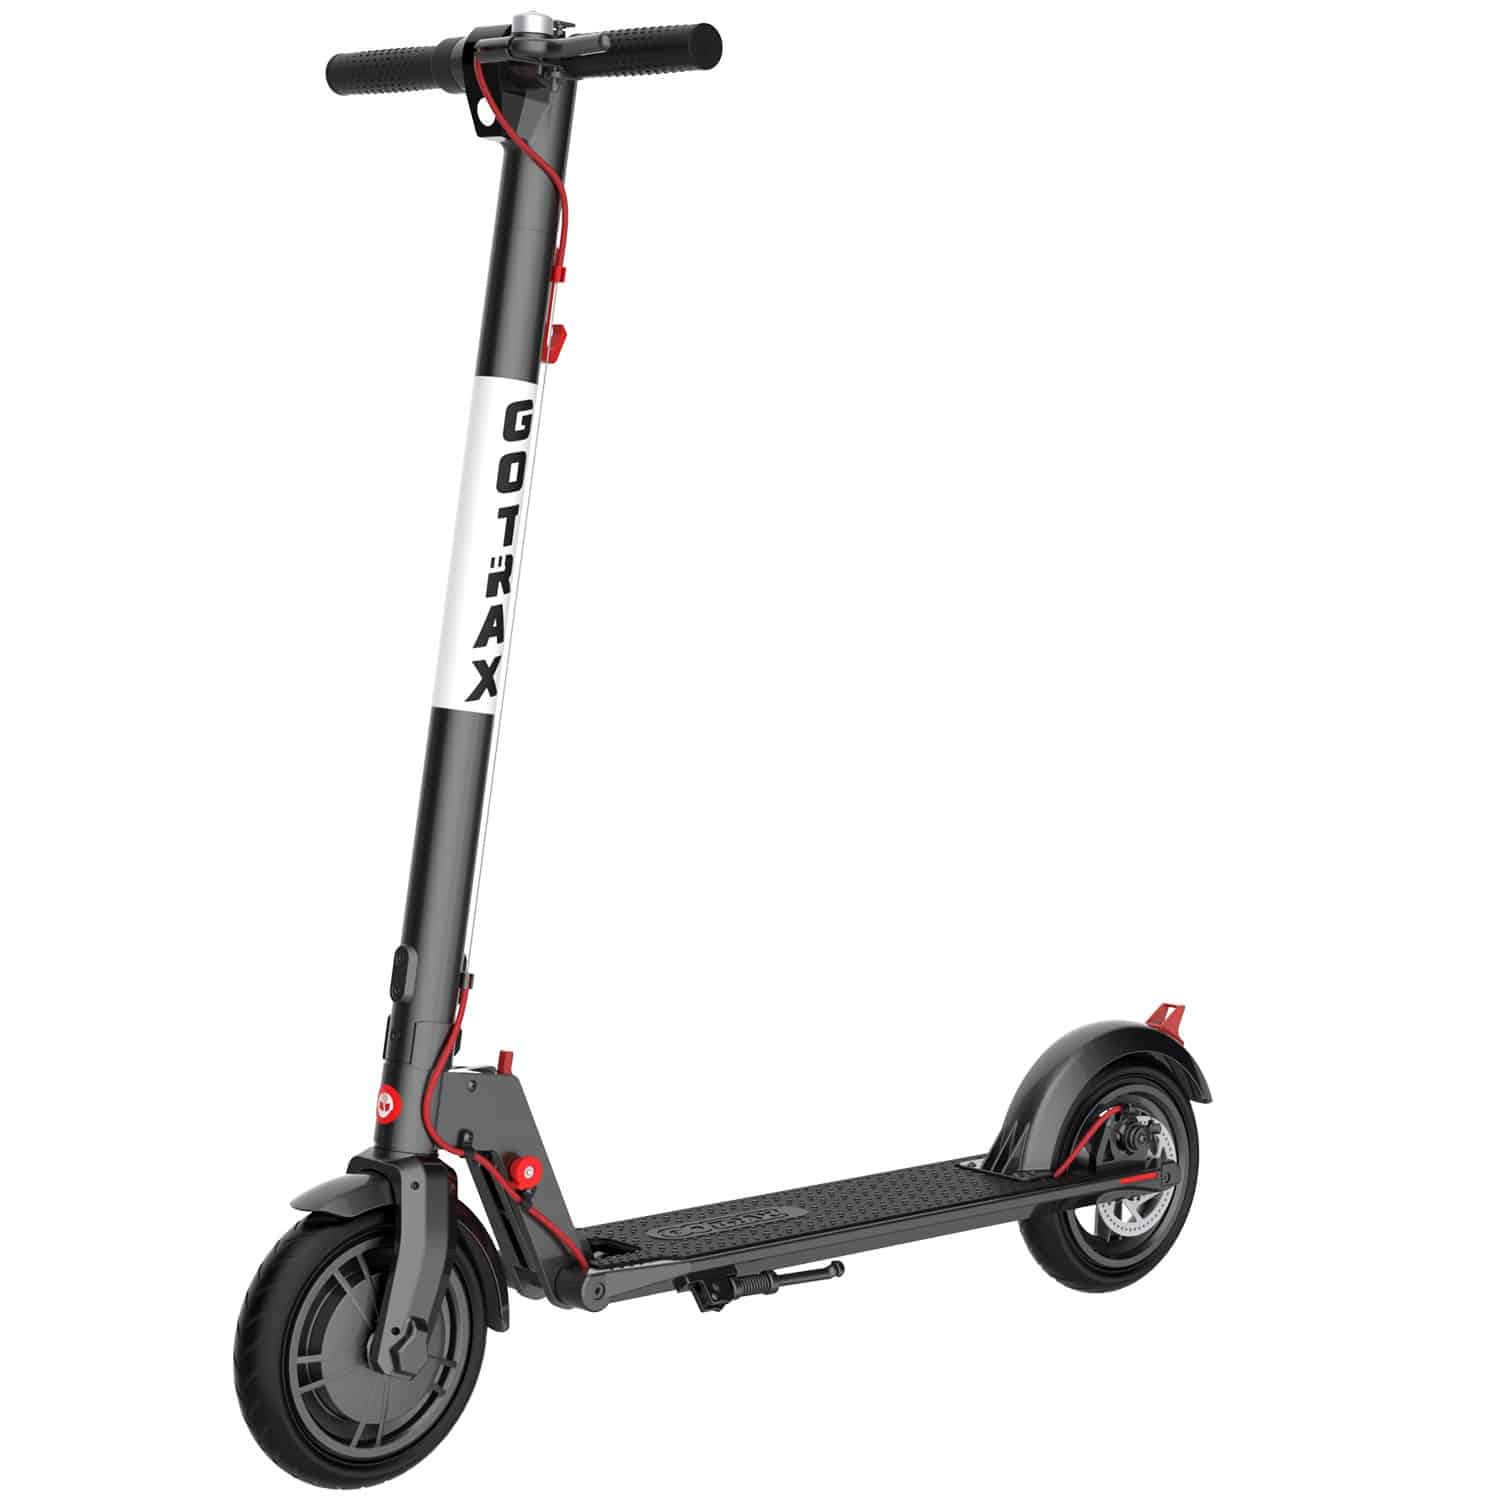 Gotrax GXL V2 Review: A Commuter Scooter That'll Give You Bang For Your Buck! 1